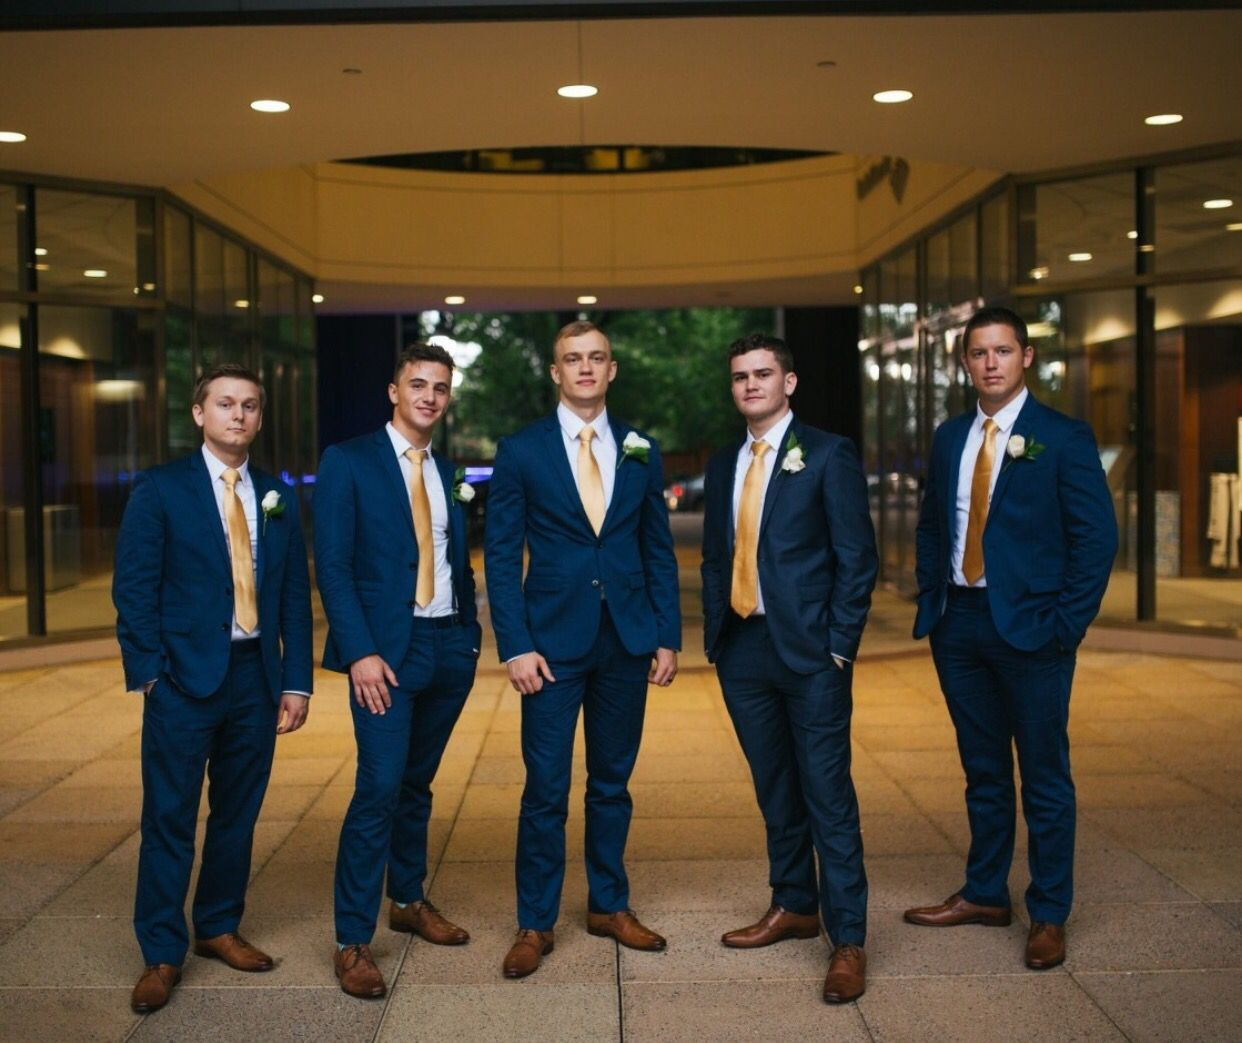 Grooms navy suits and gold ties ! | Wedding Ideas ...